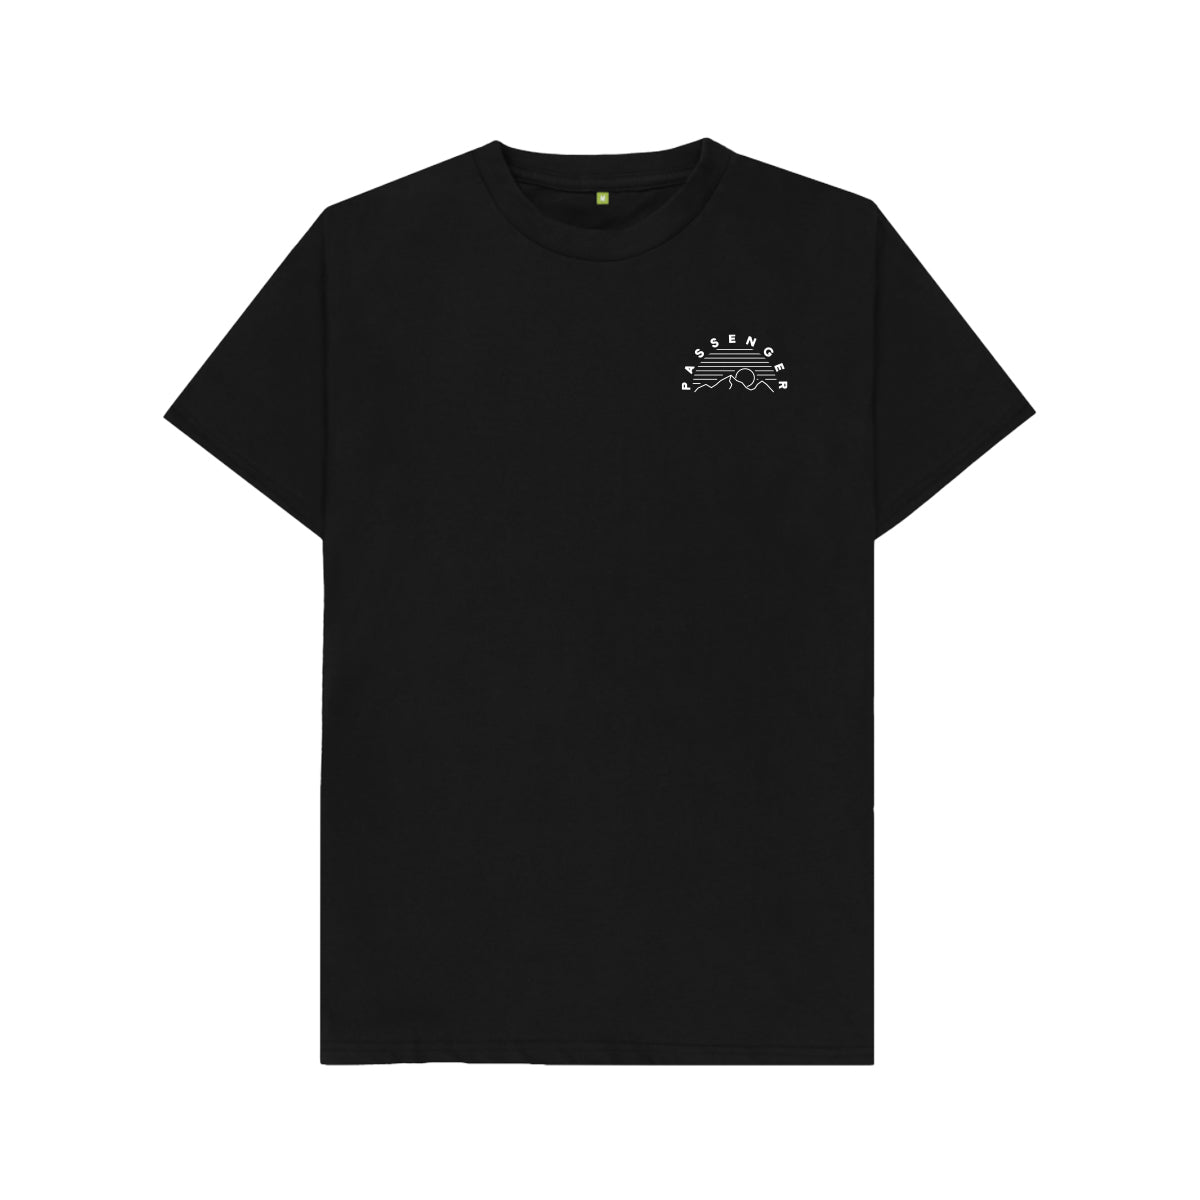 Lymington T-Shirt - Black image 4